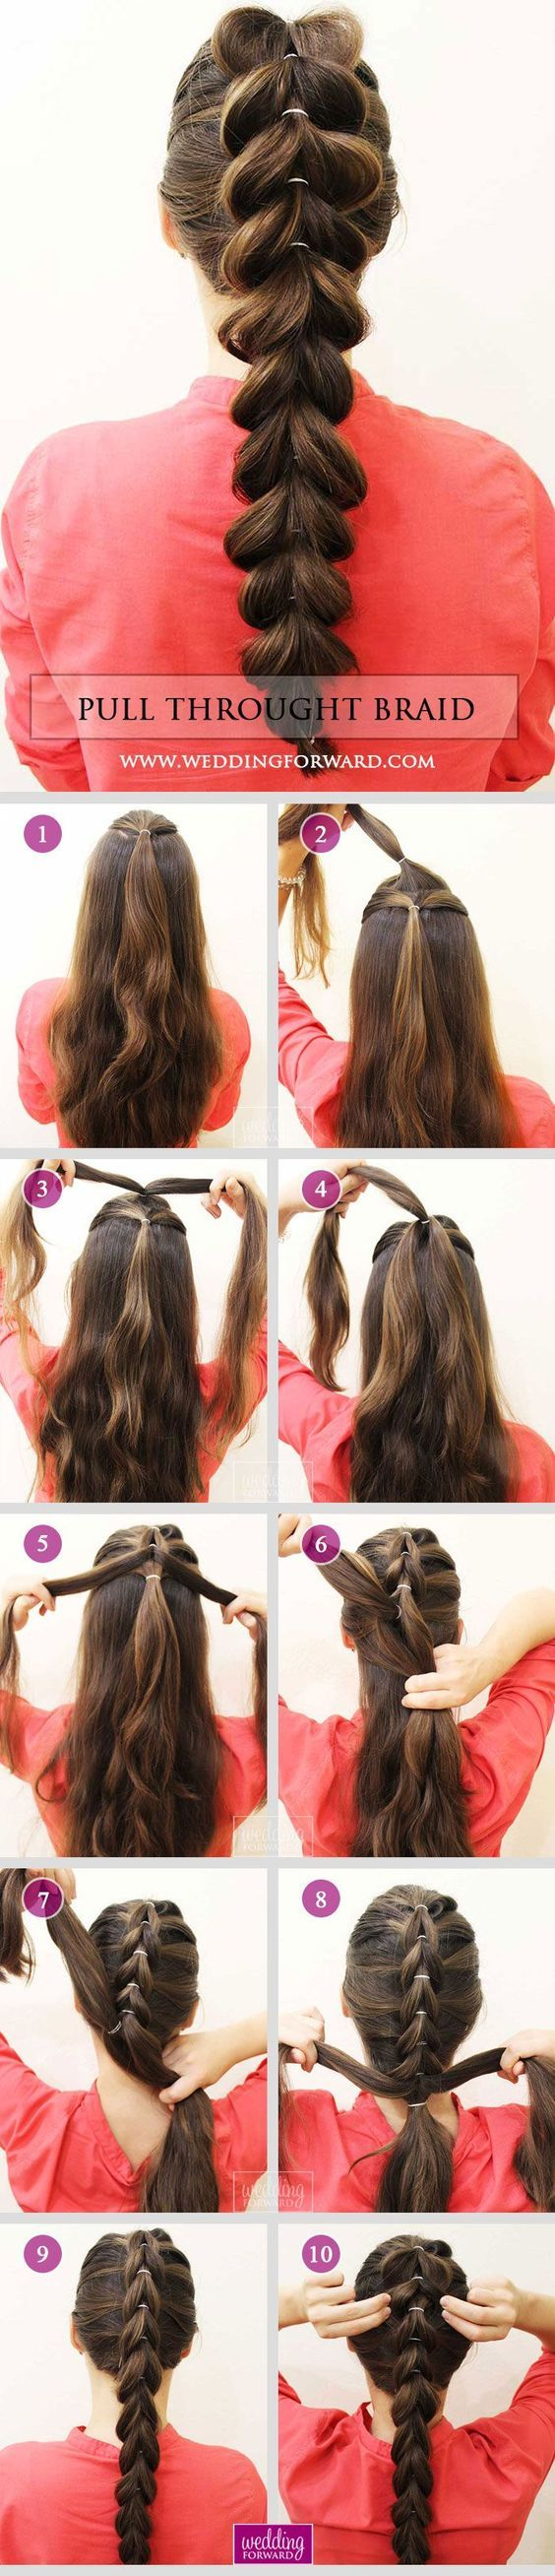 Don't get stuck into a hairstyle rut. Learn to style your hair in easy braids that anyone can master. No matter what your skill level, there are a few braids out there that anyone can recreate. You don't need to be a master stylist to follow these step-by-step tutorials. As a braiding newbie, I know …